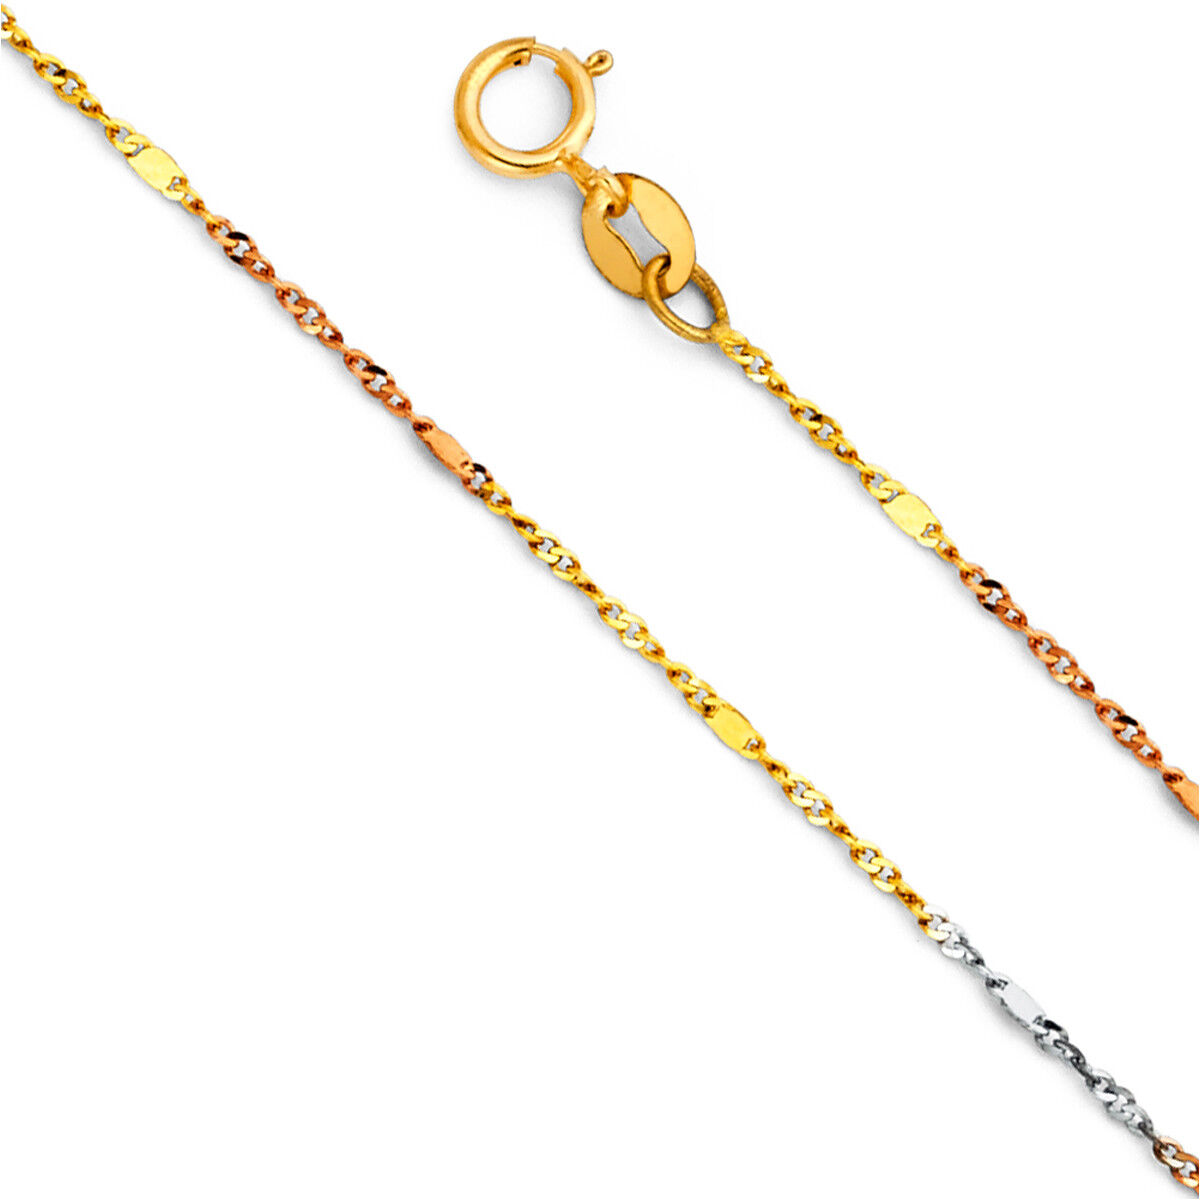 14K Real Tri color gold 1.3mm Singapore with Bar Chain 16''- 22'' for Women